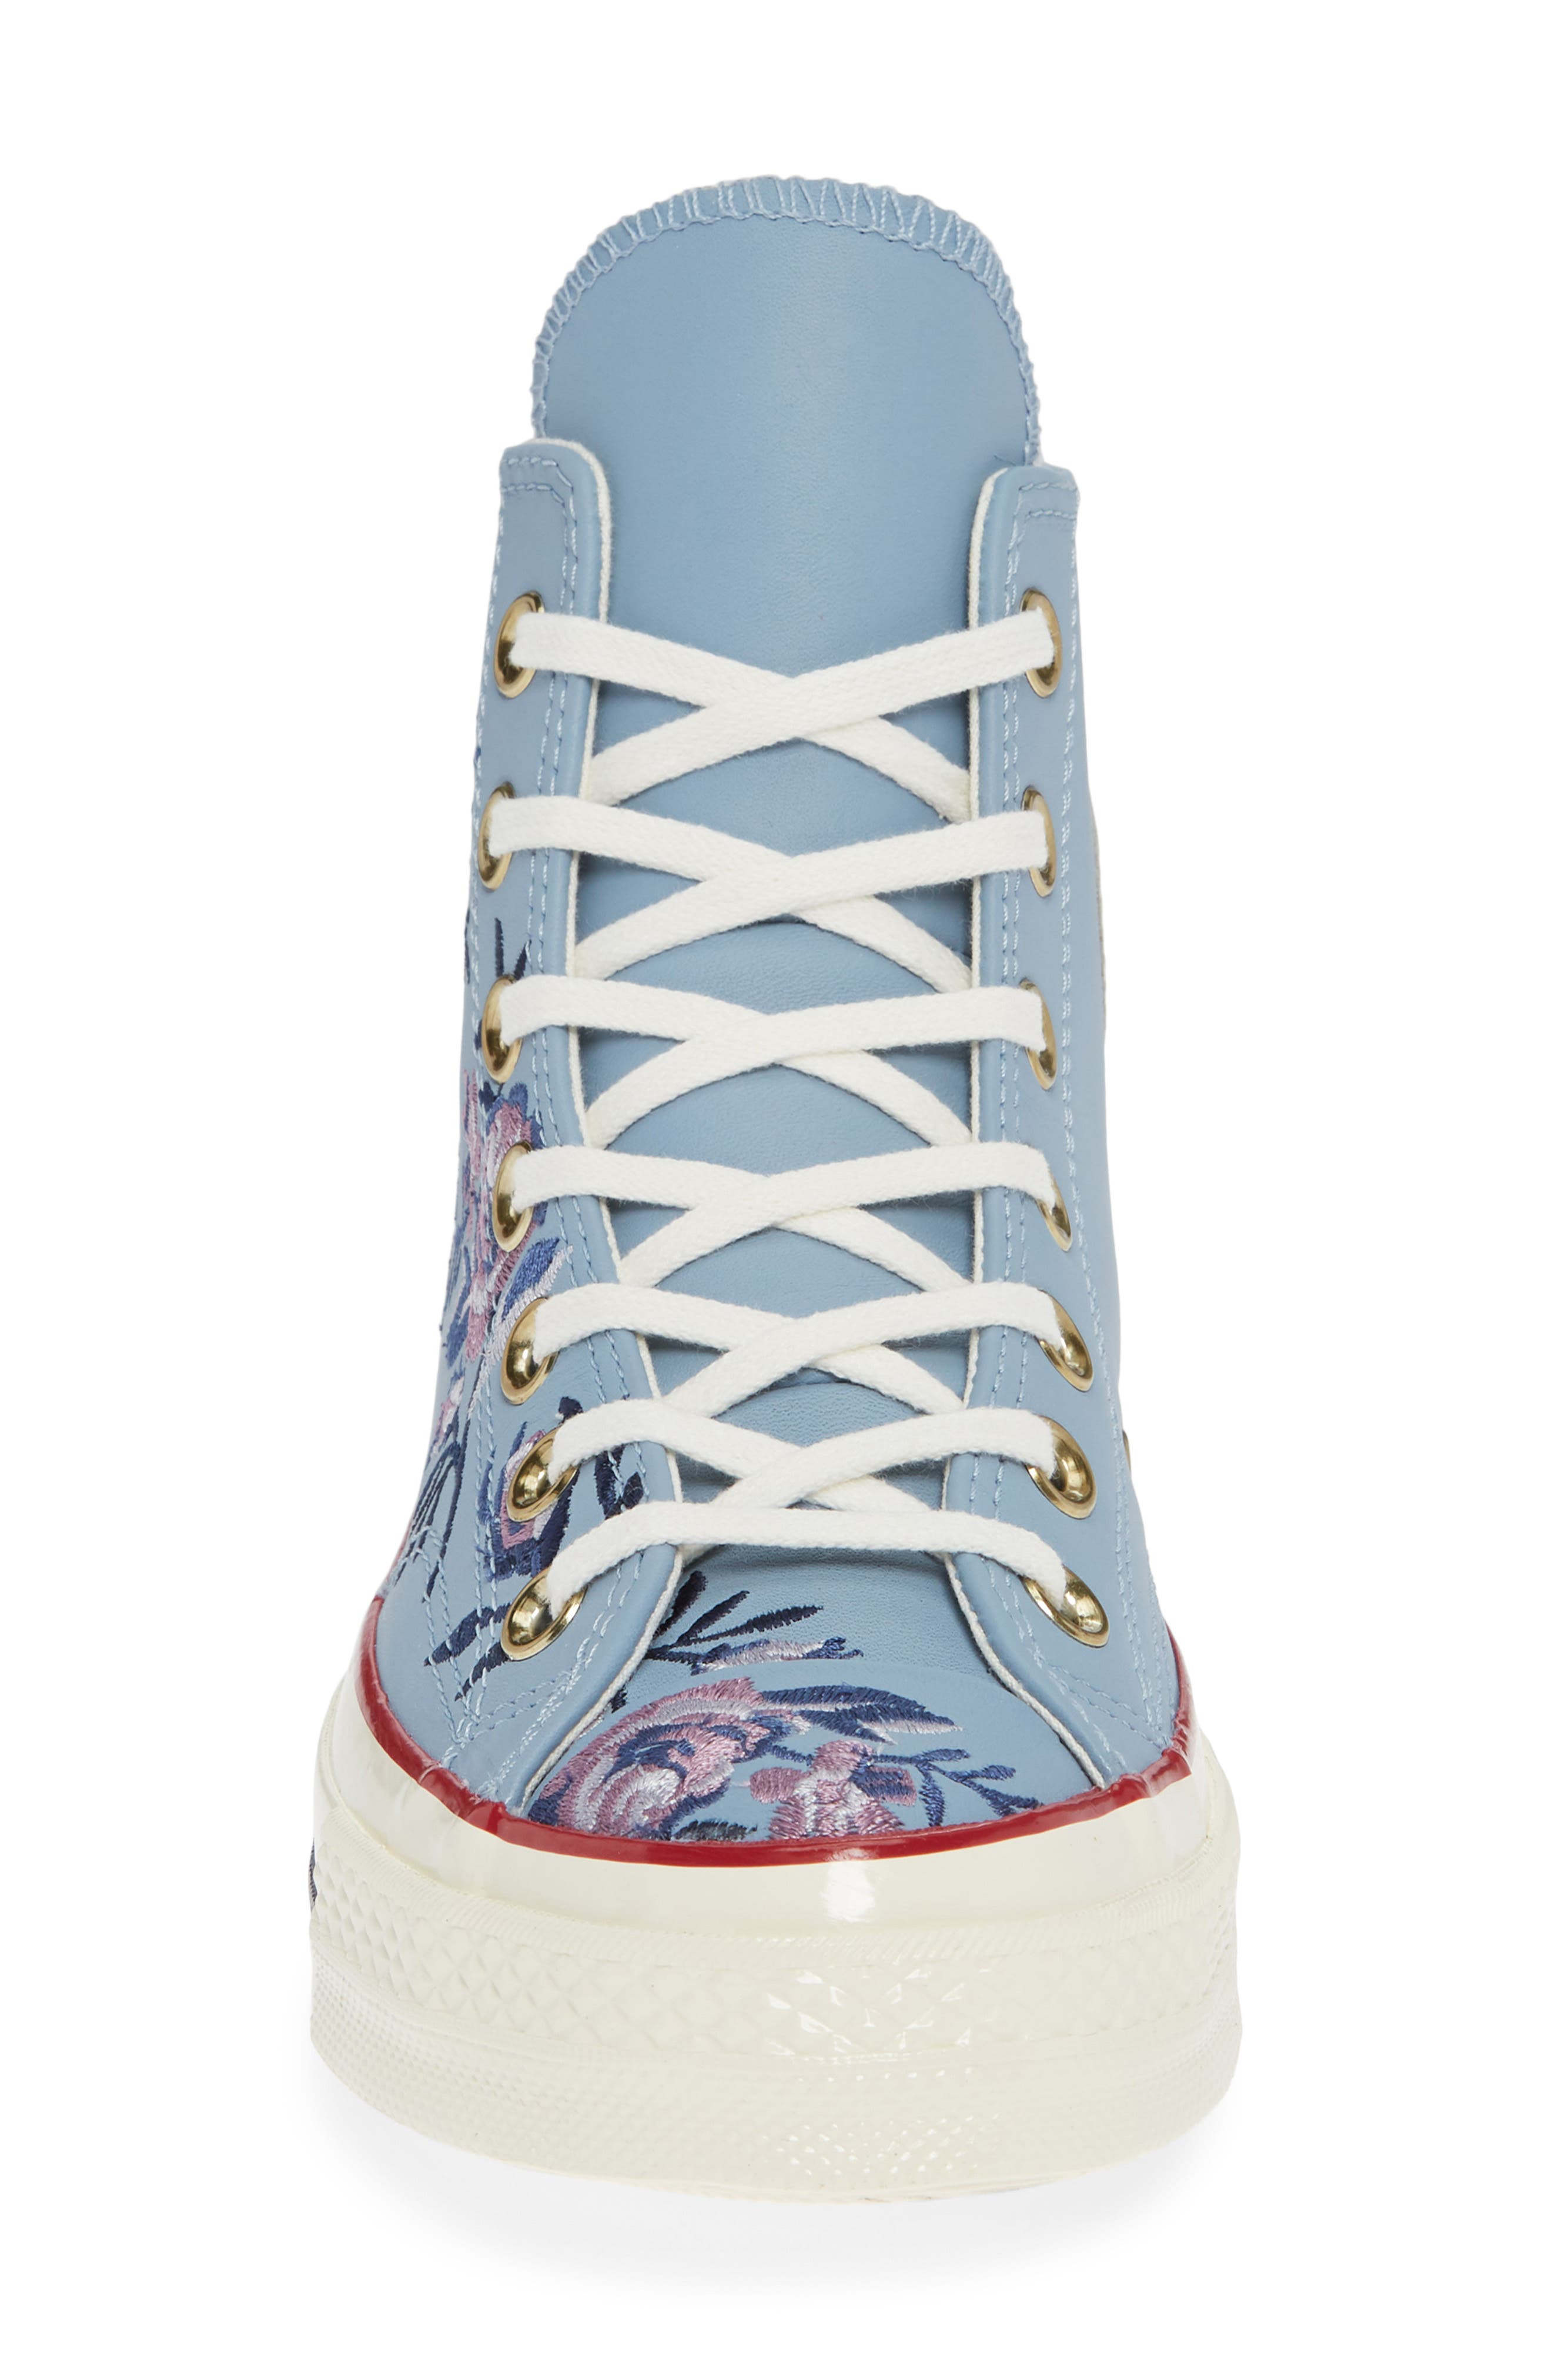 Chuck Taylor<sup>®</sup> All Star<sup>®</sup> Parkway Floral 70 High Top Sneaker,                             Alternate thumbnail 4, color,                             WASHED DENIM LEATHER